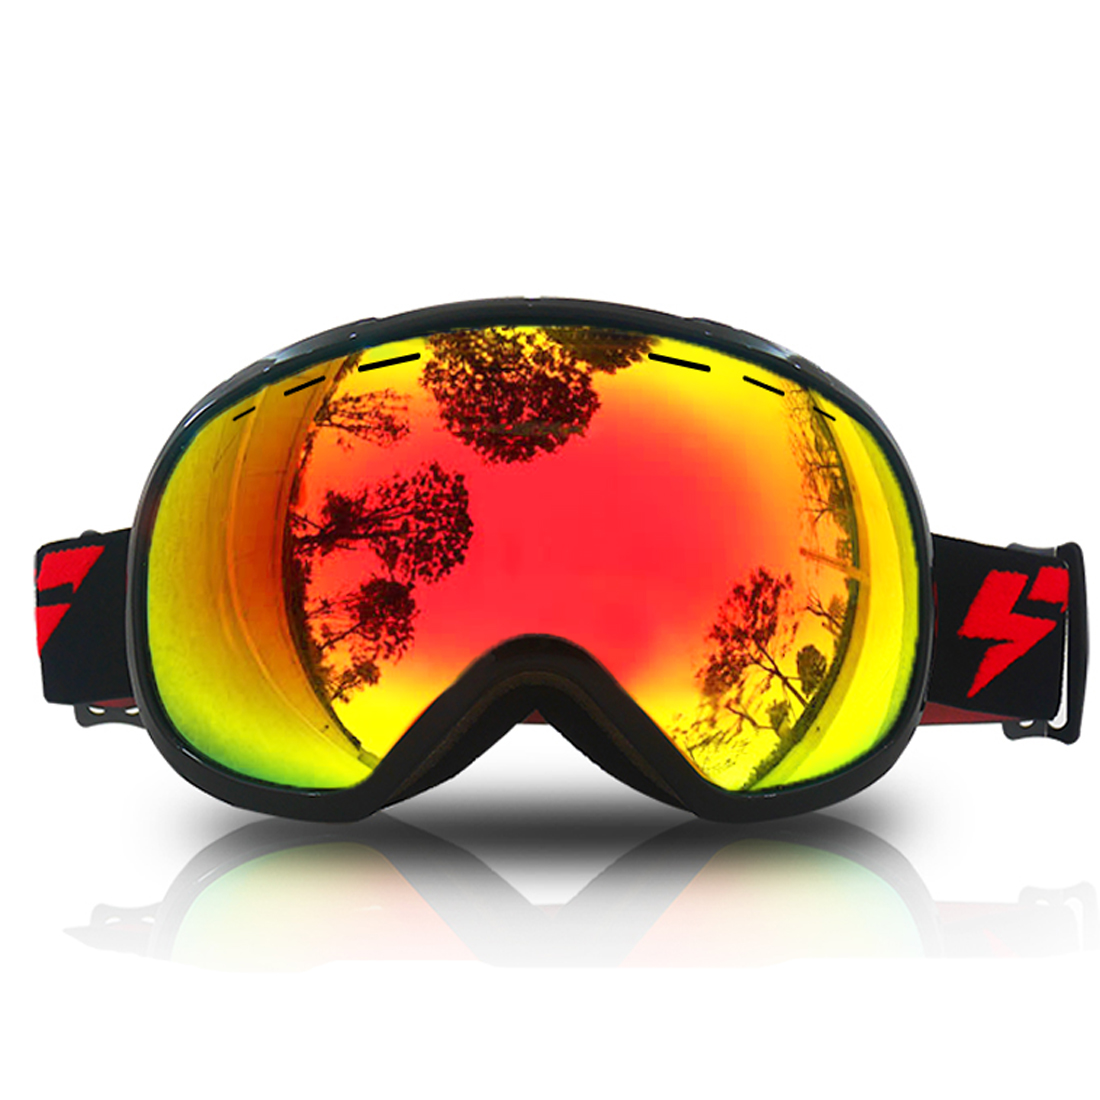 LY-100 Authorized Ski Snowboard Goggles Anti-fog UV400 Protect OTG Double Lens Anti-slip Strap Black